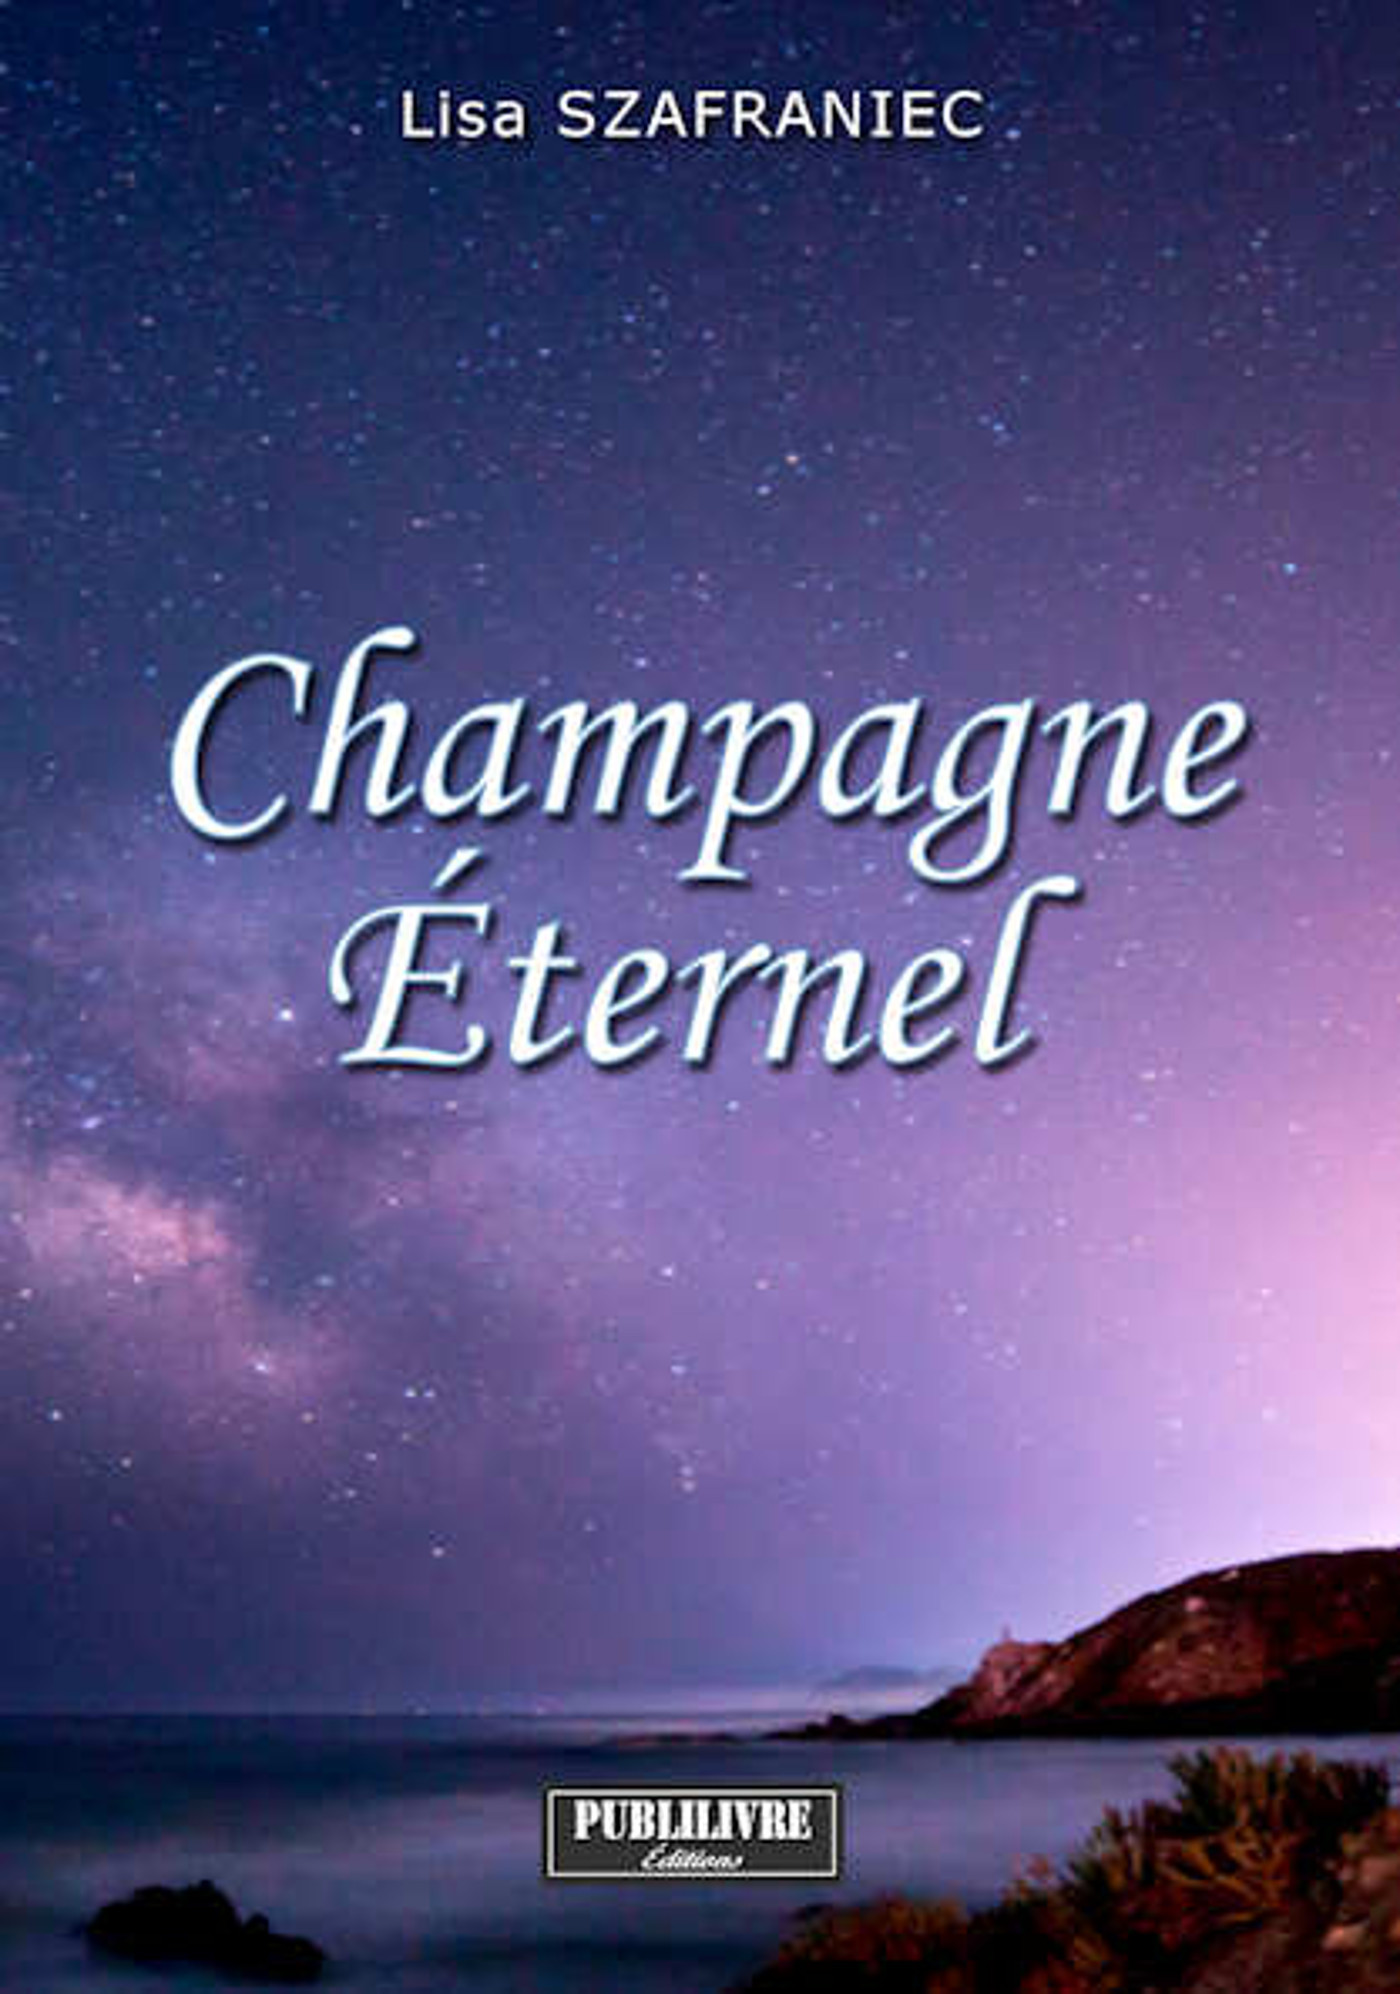 CHAMPAGNE ETERNEL